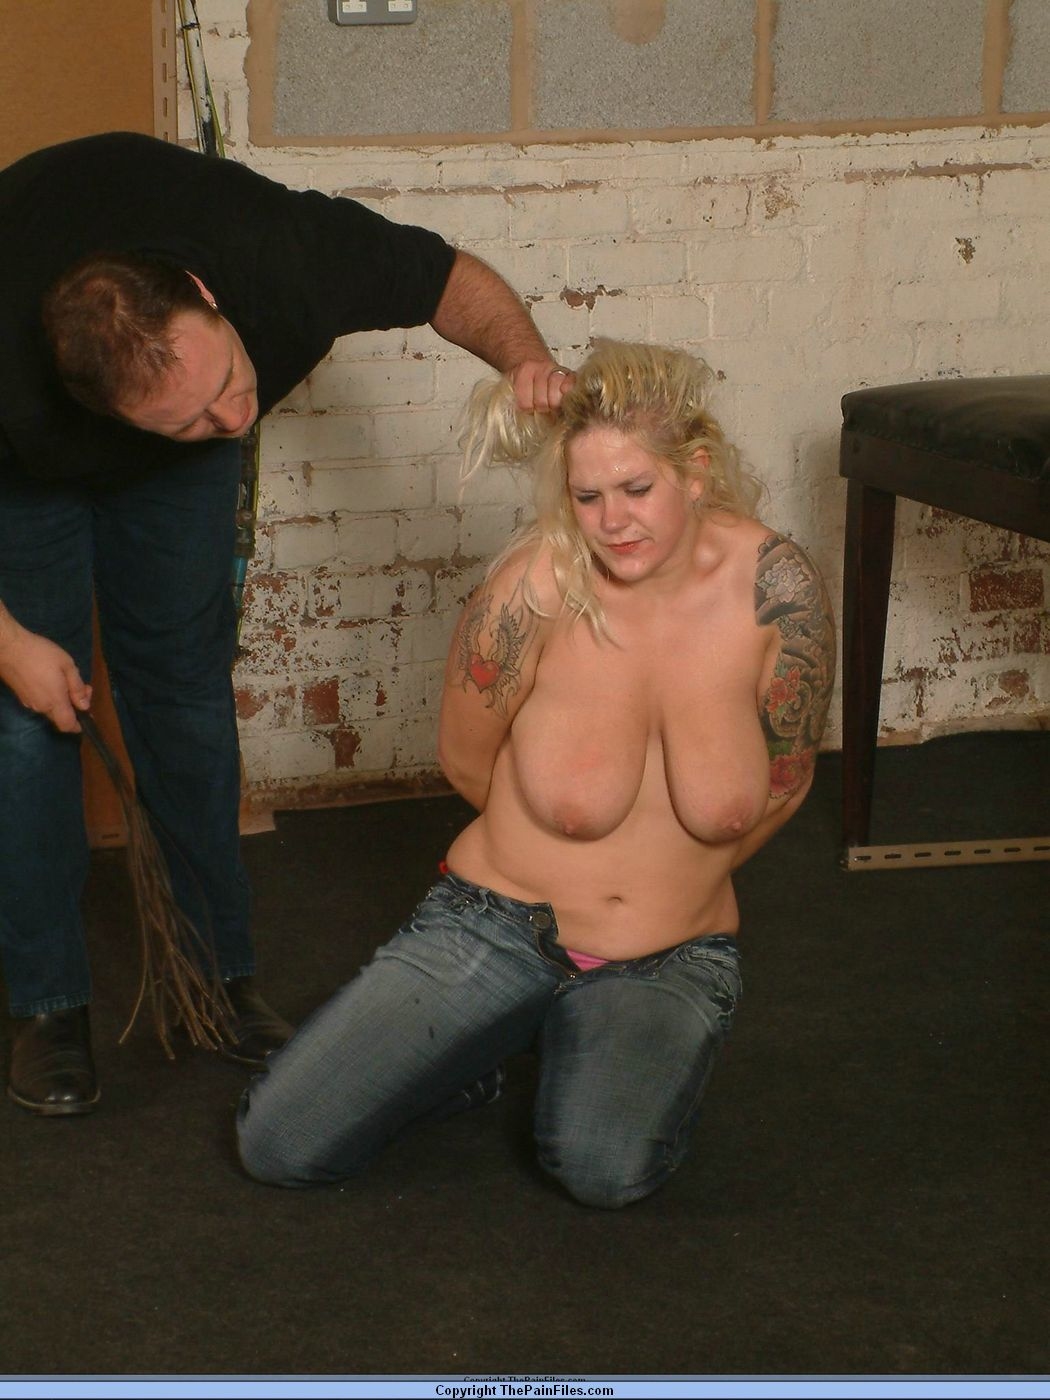 Spanked and humiliated